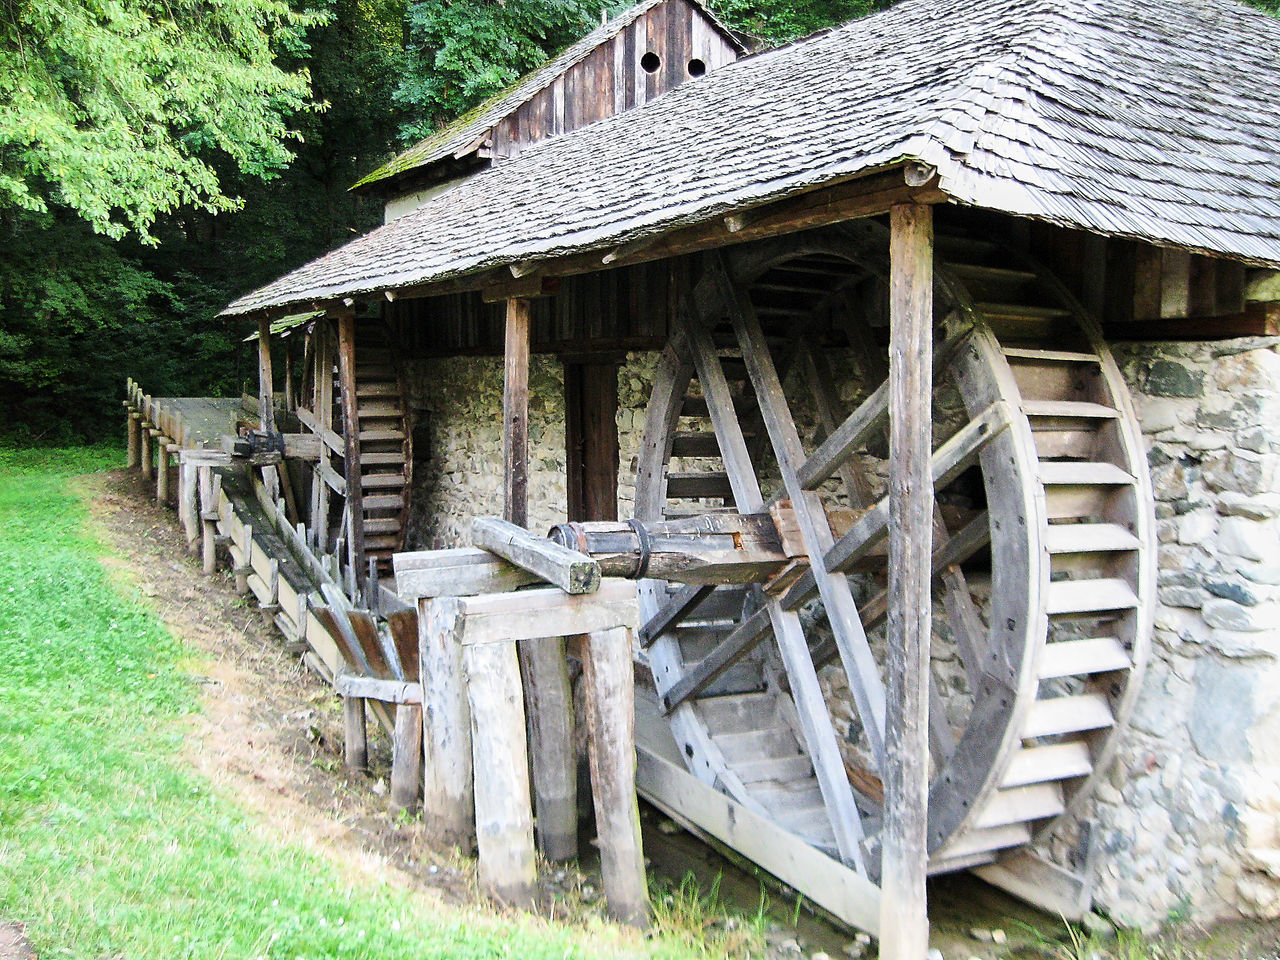 wood - material, built structure, architecture, outdoors, water wheel, day, watermill, field, no people, building exterior, rural scene, tree, grass, nature